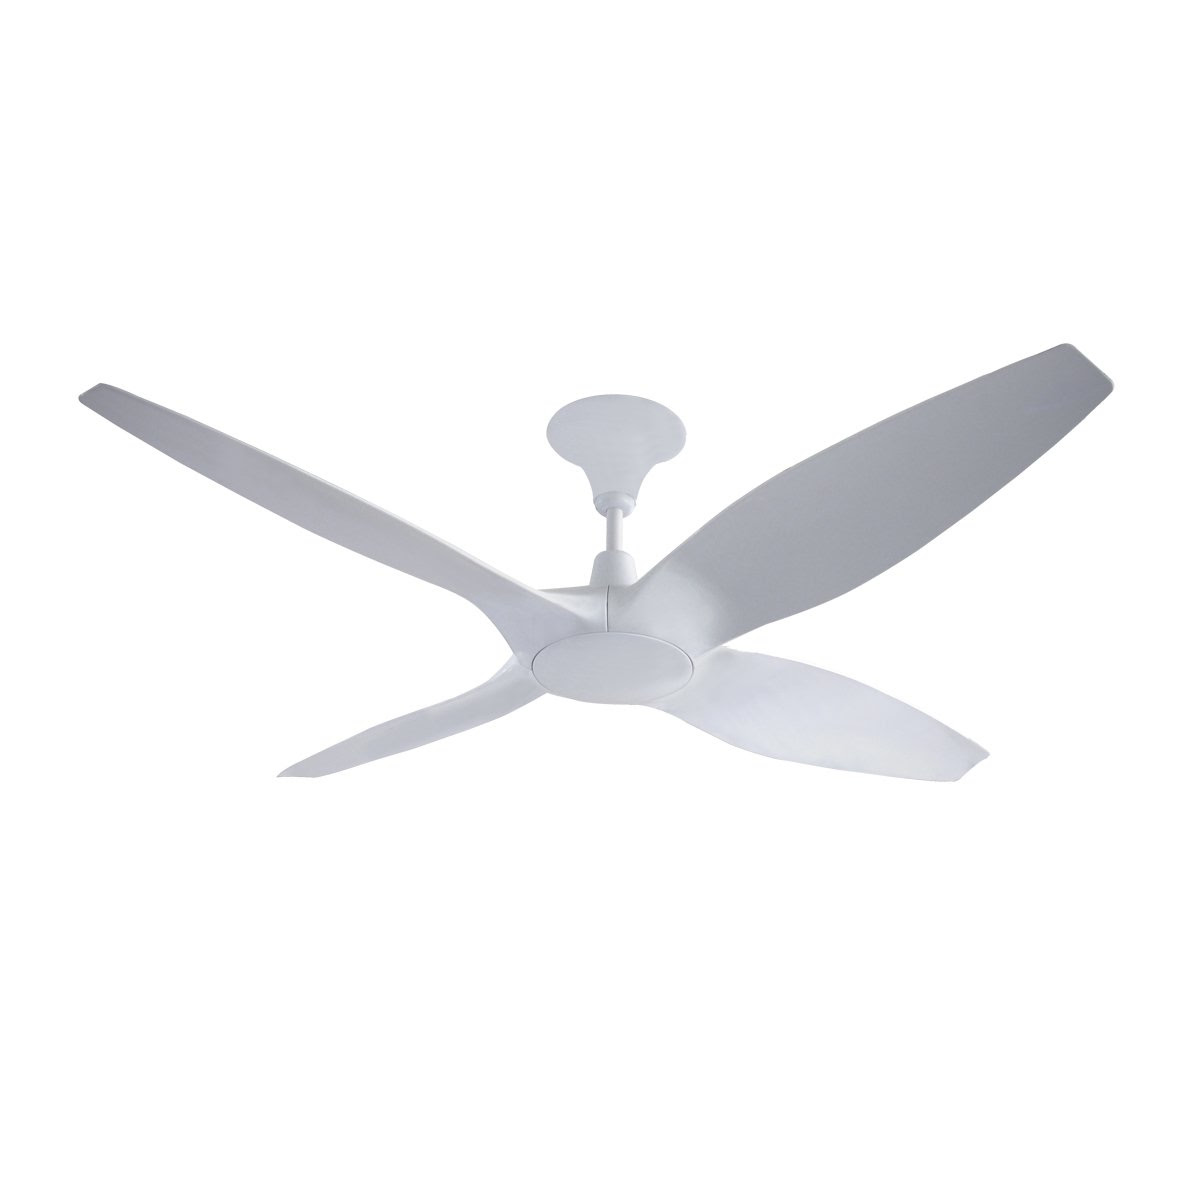 Designer 4 Blade 60 inch DC Ceiling Fan with Remote in ...